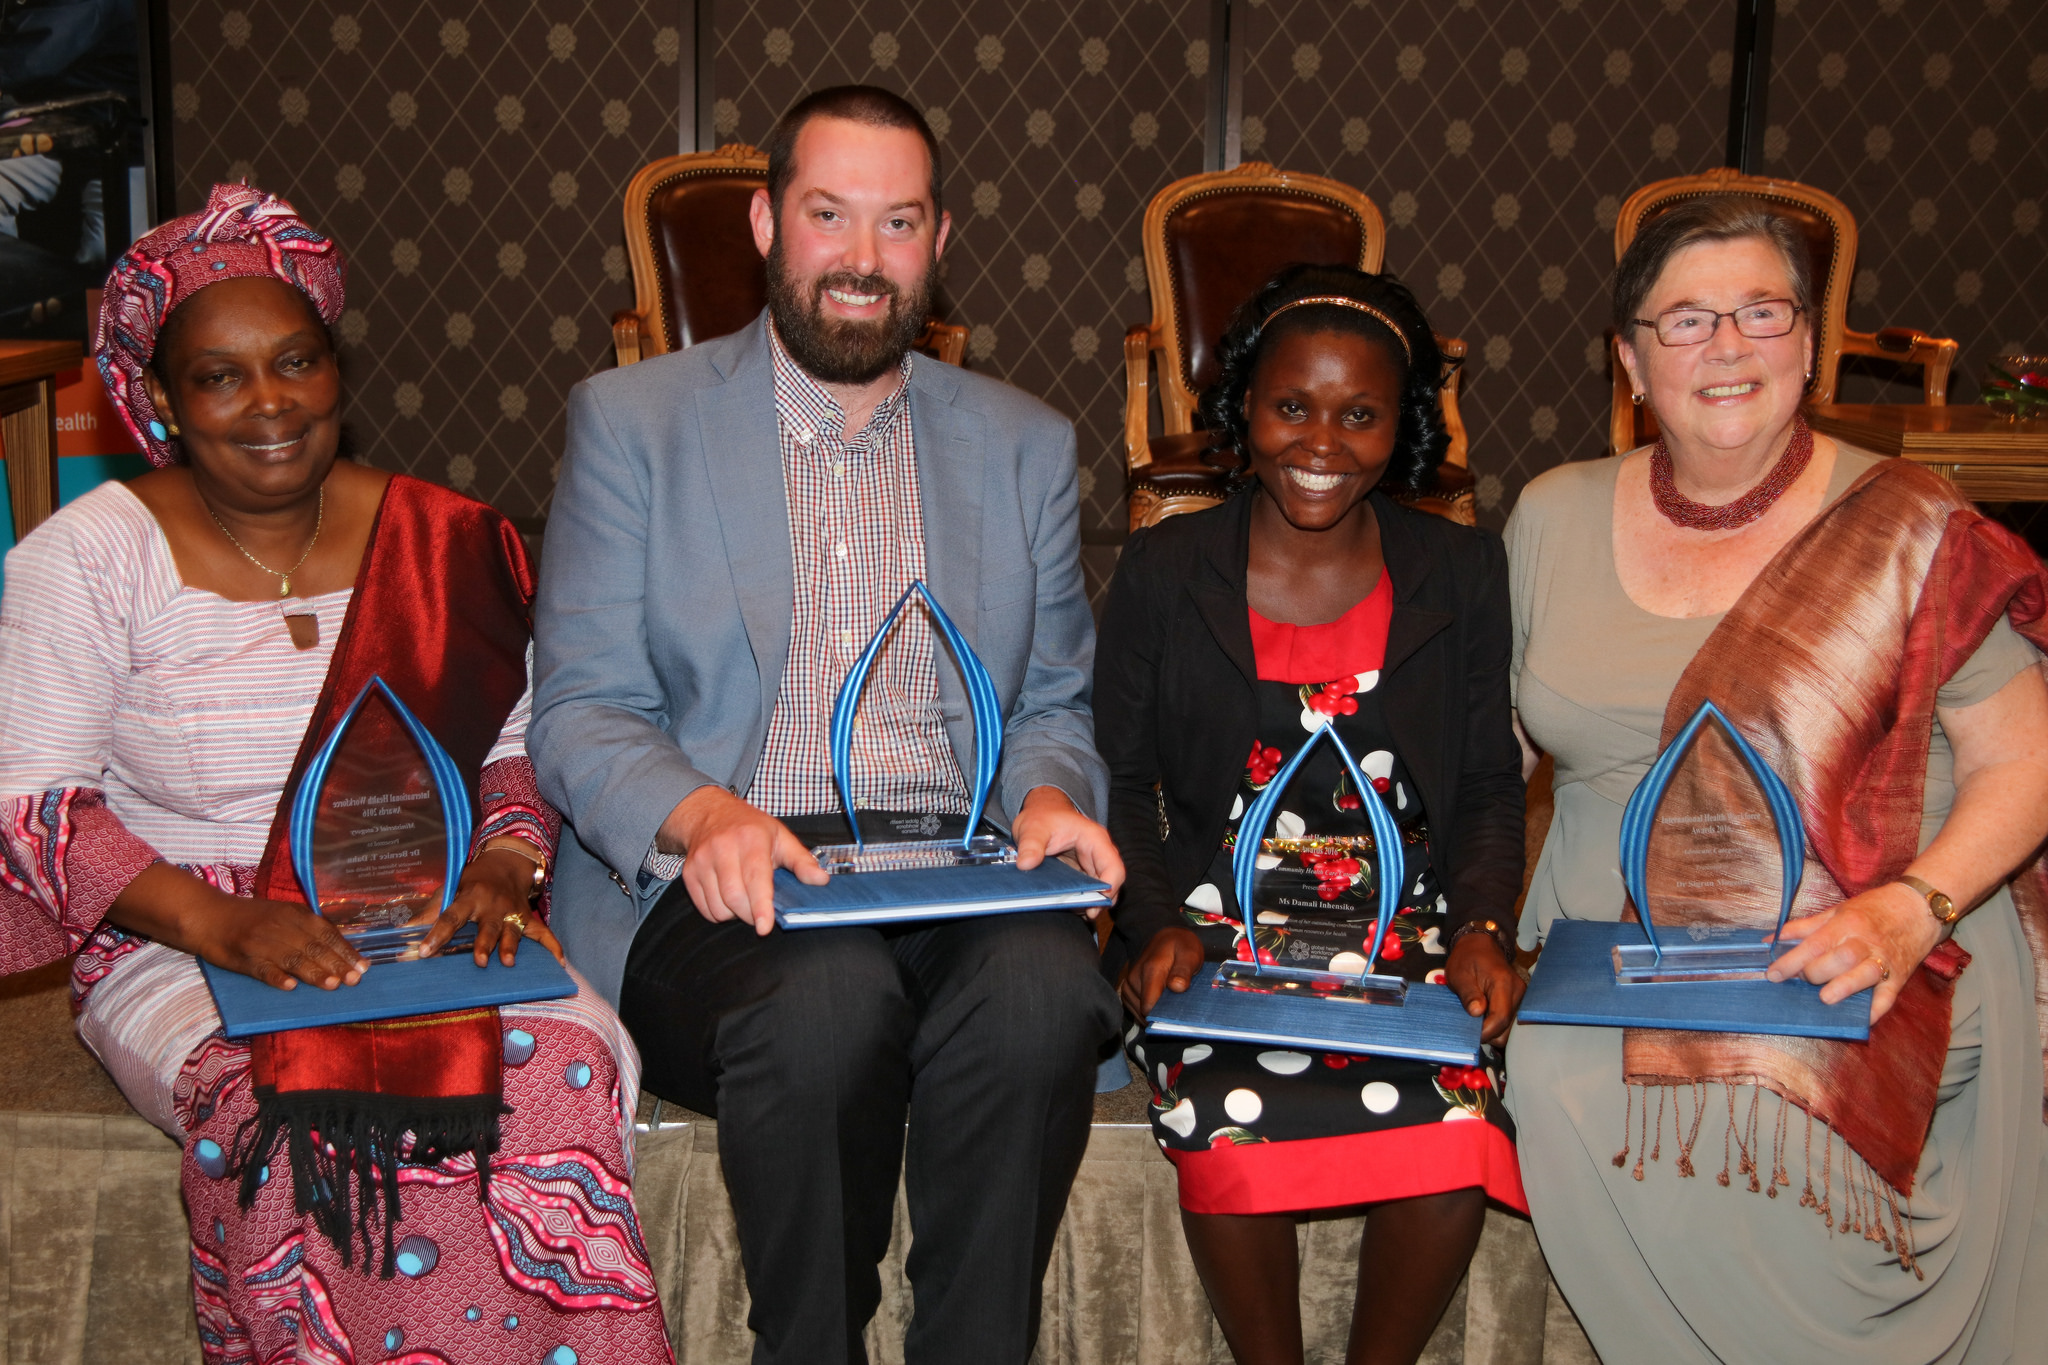 Ms. Damalie Inhensiko and the other winners of the award at the celebration event in Geneva